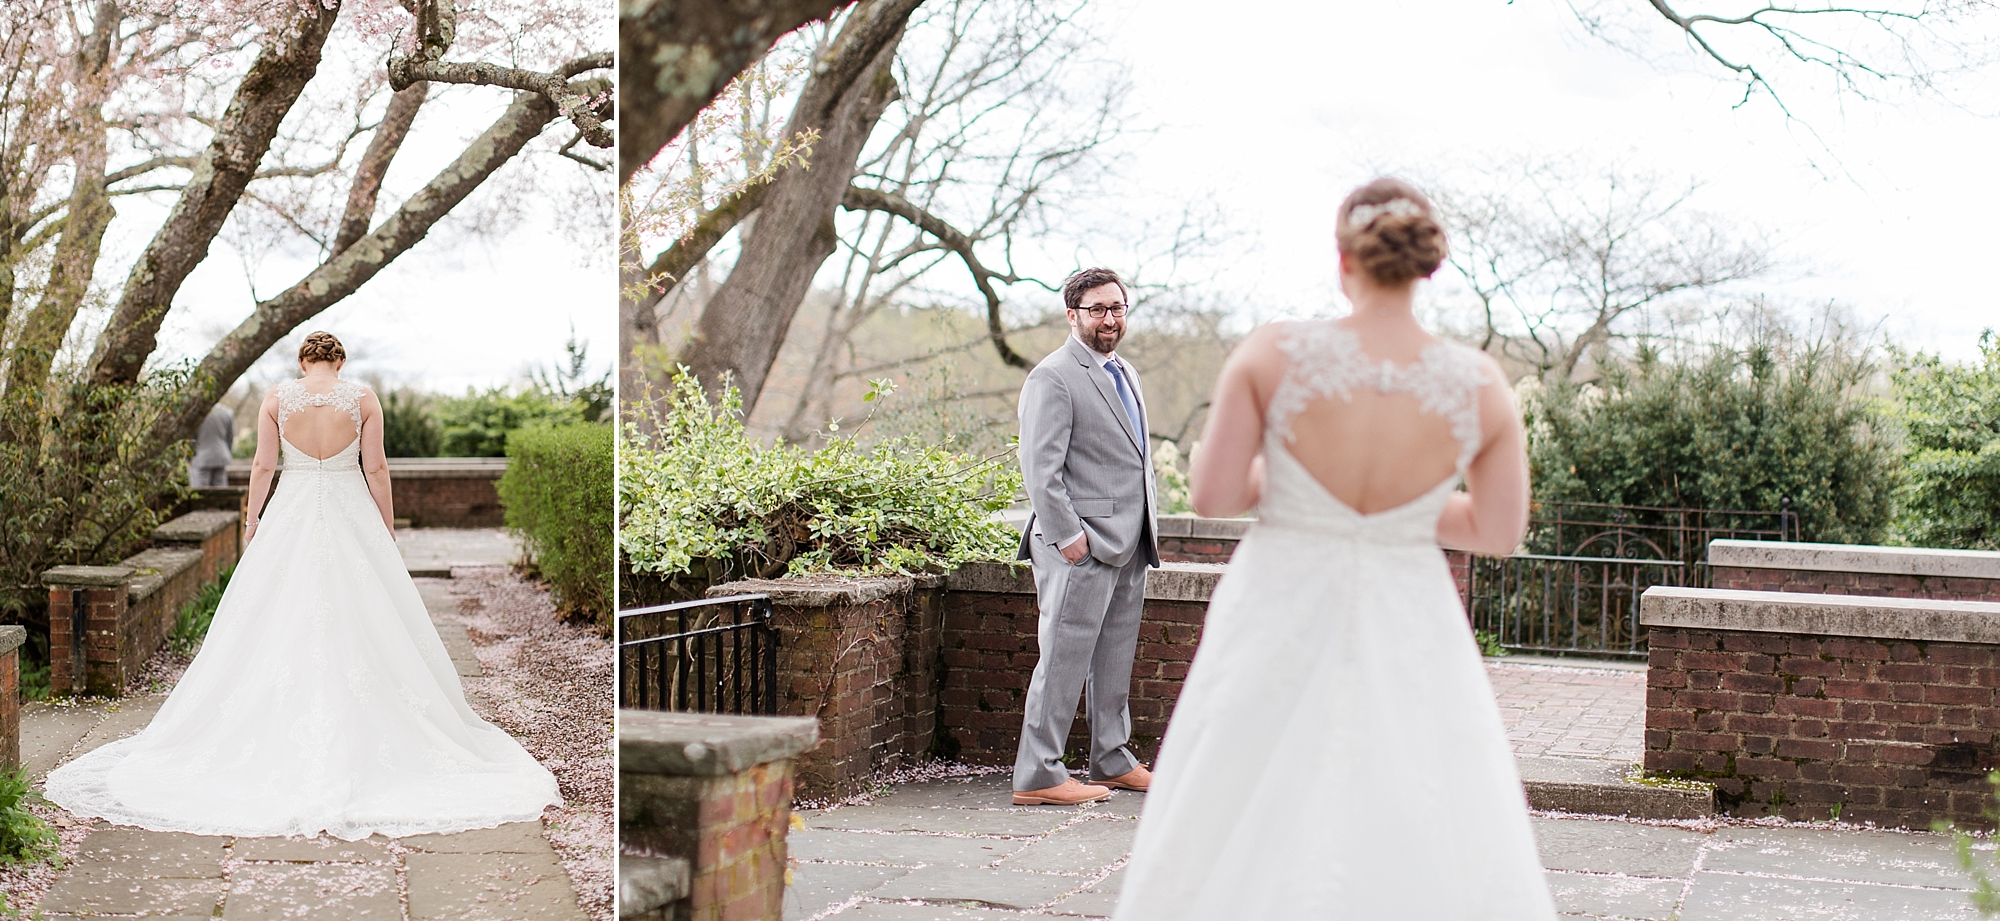 Tori taking a deep breath in before her first look with Nunzio at the Old North Bridge in Concord, MA